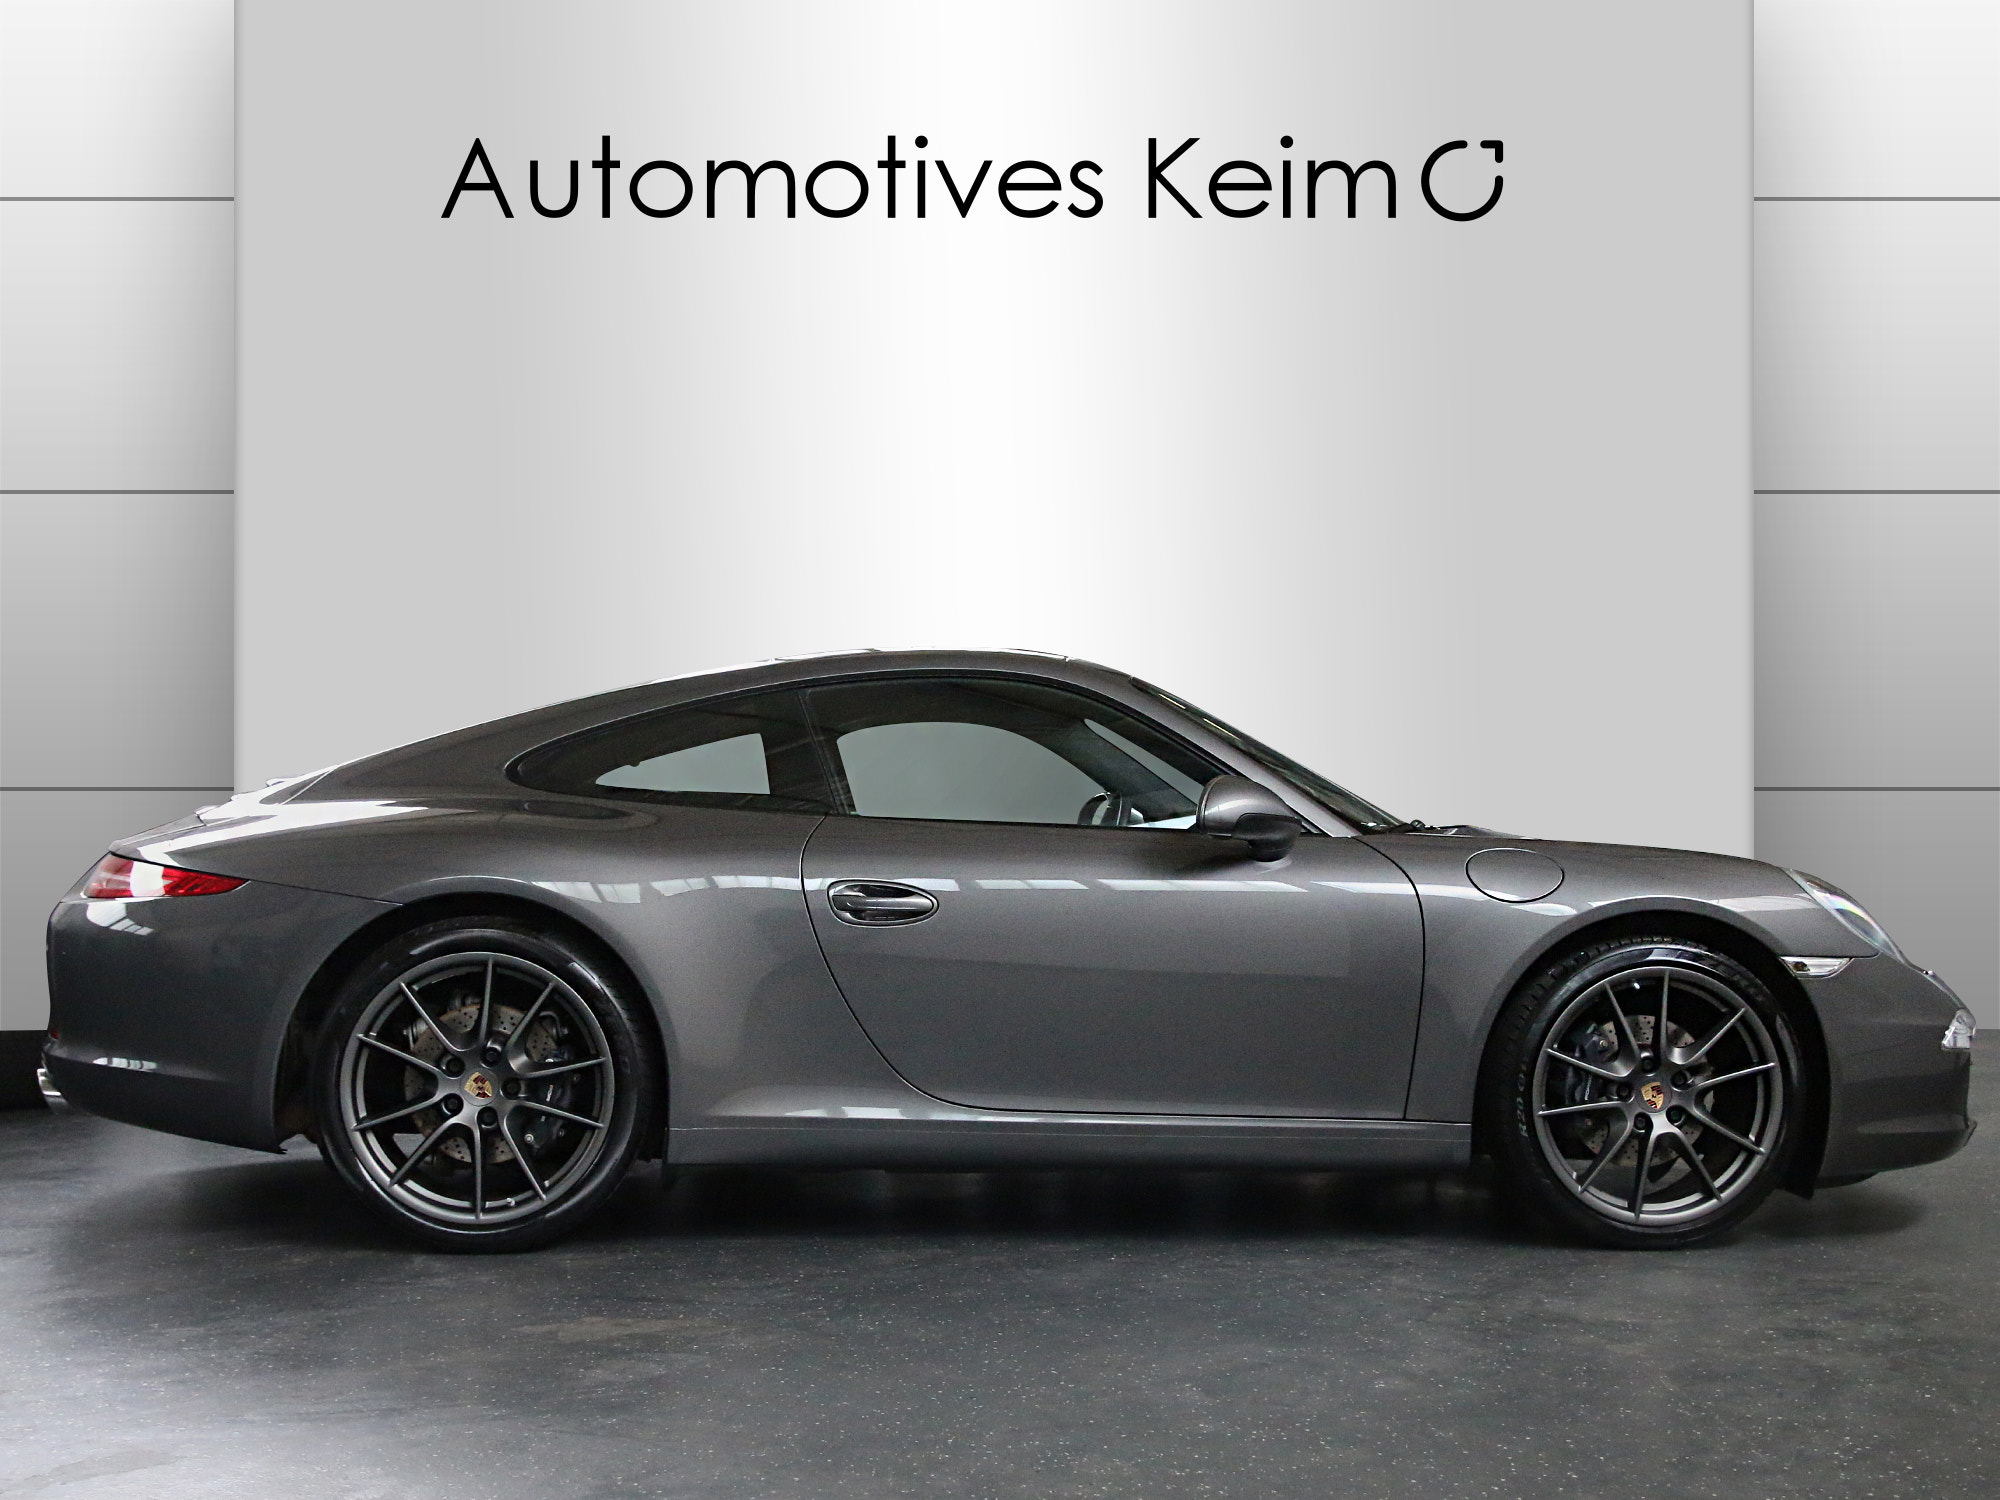 PORSCHE 911 991 COUPE Automotives Keim GmbH 63500 Seligenstadt Www.automotives Keim.de Oliver Keim 000248